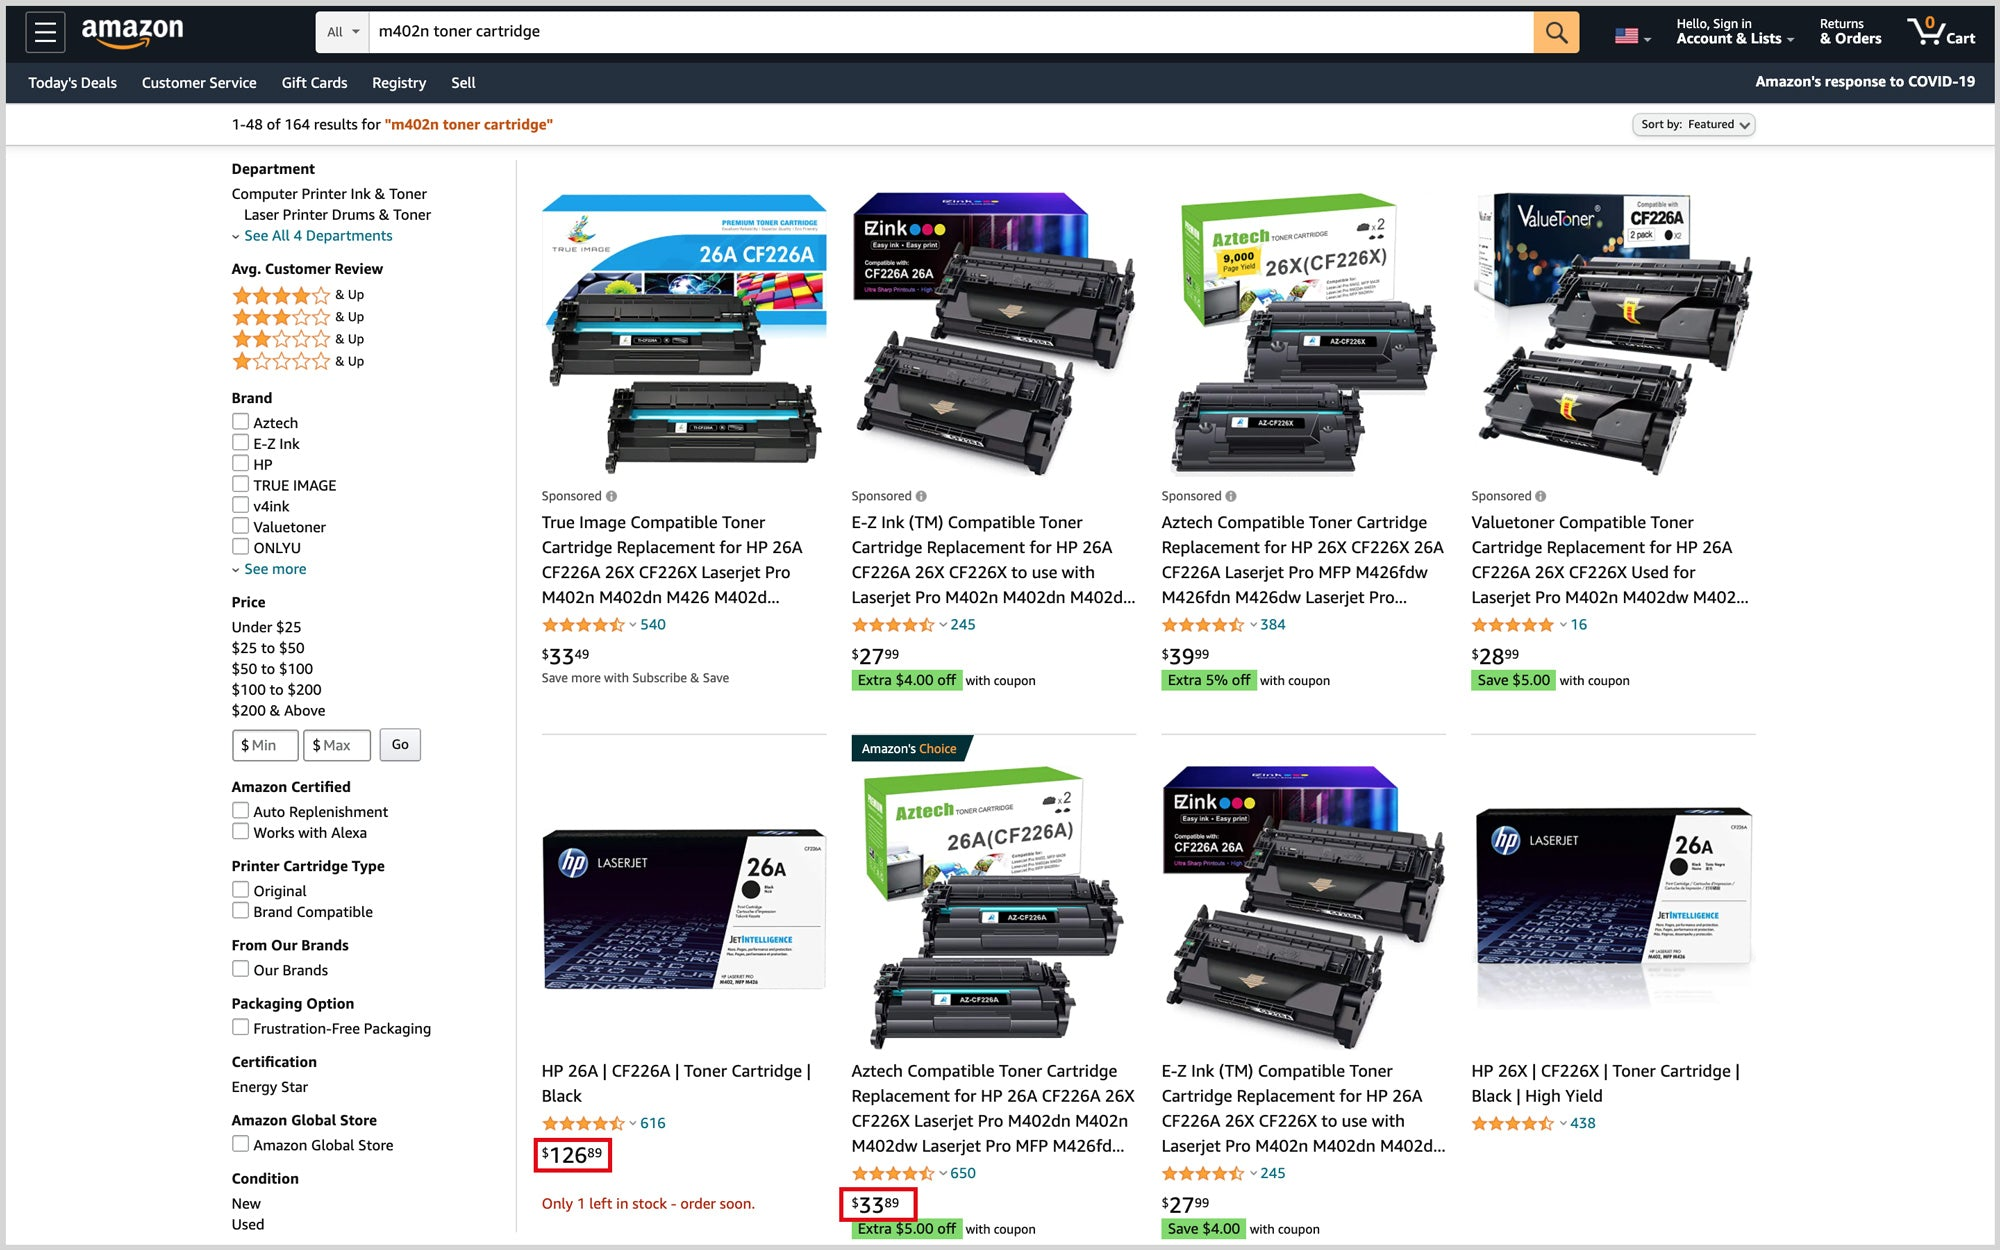 Searching for ink and toner on Amazon